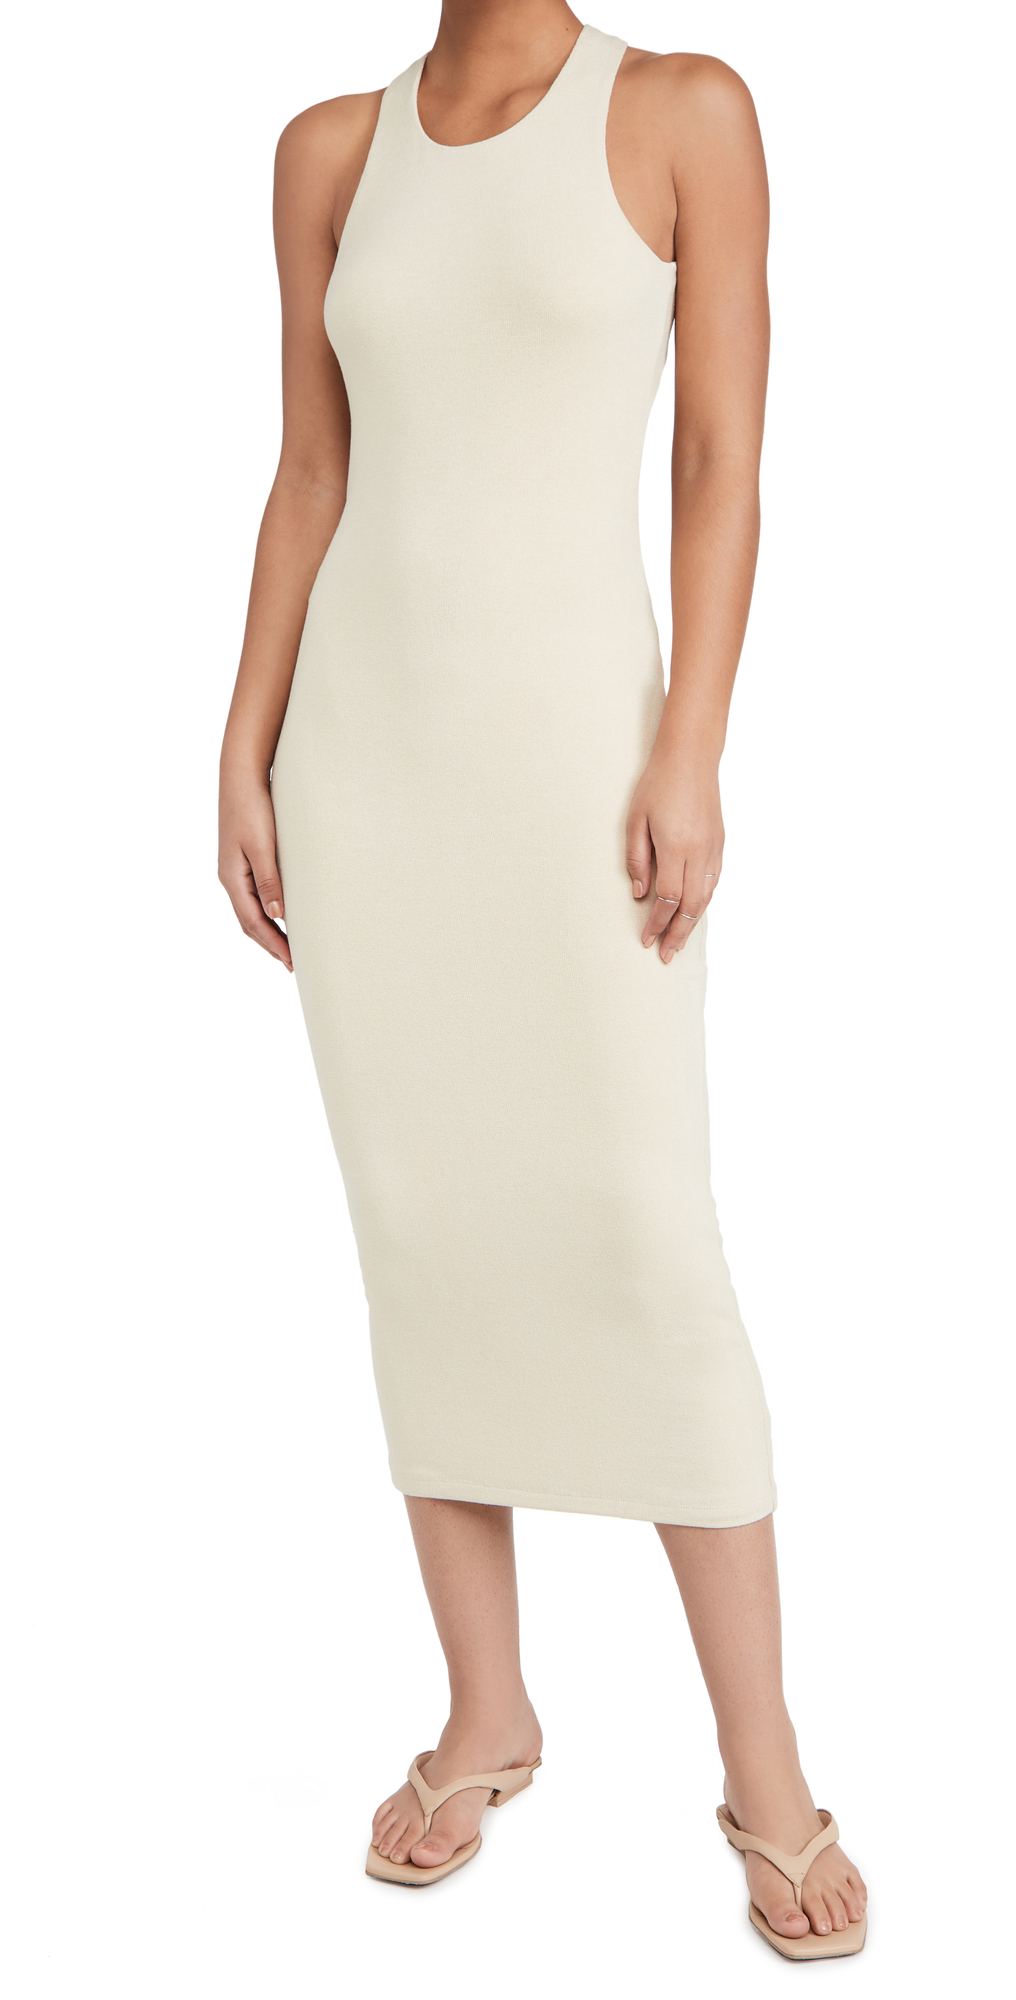 The Clare Dress